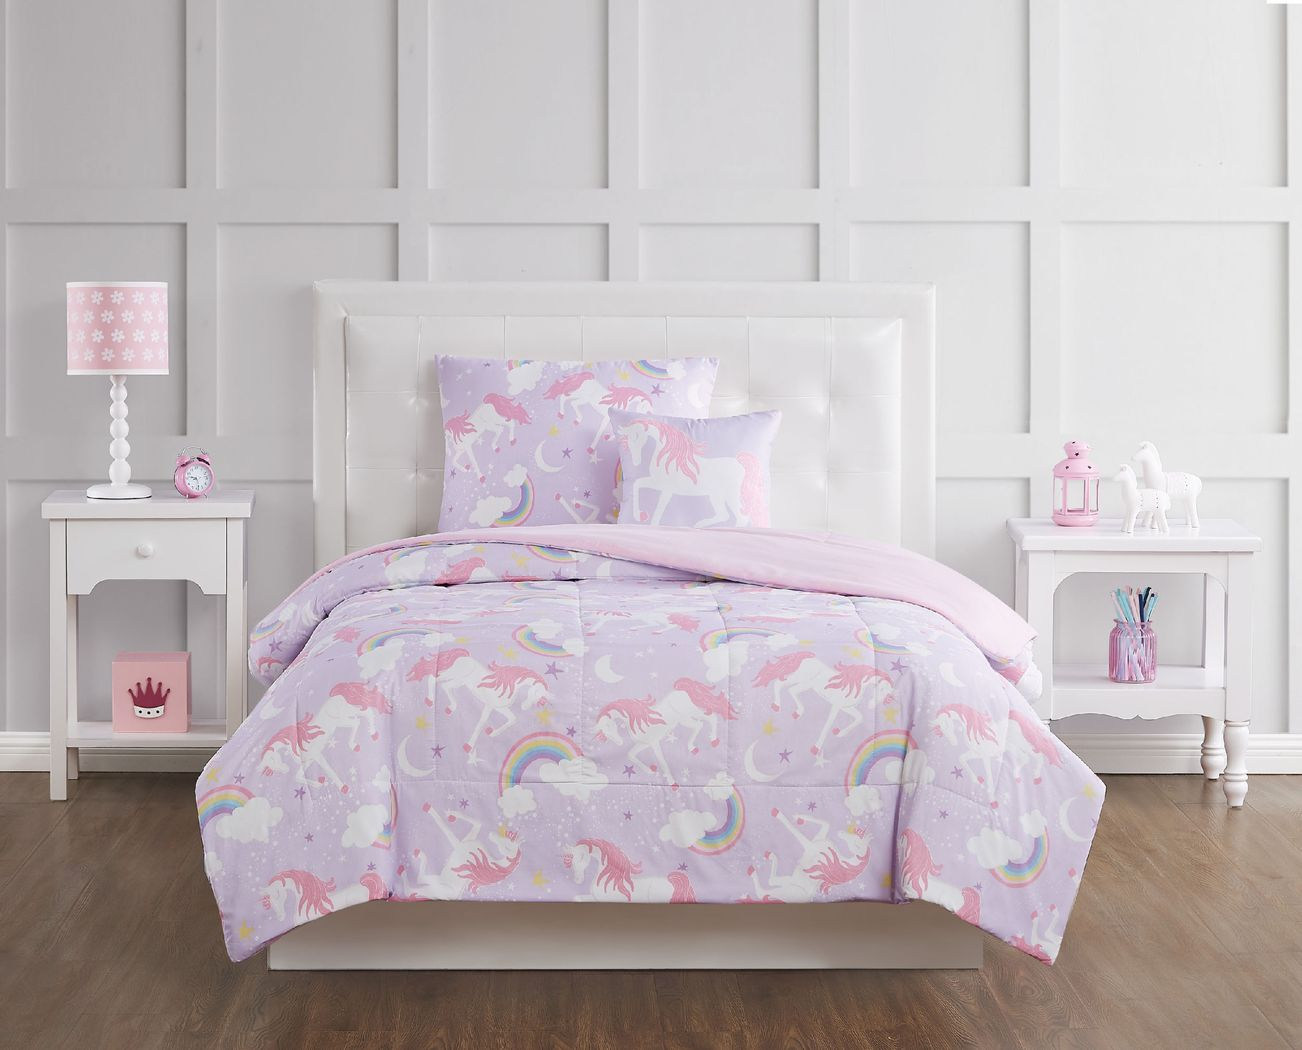 Unicorn Bedding Bed Sets Comforters Blankets